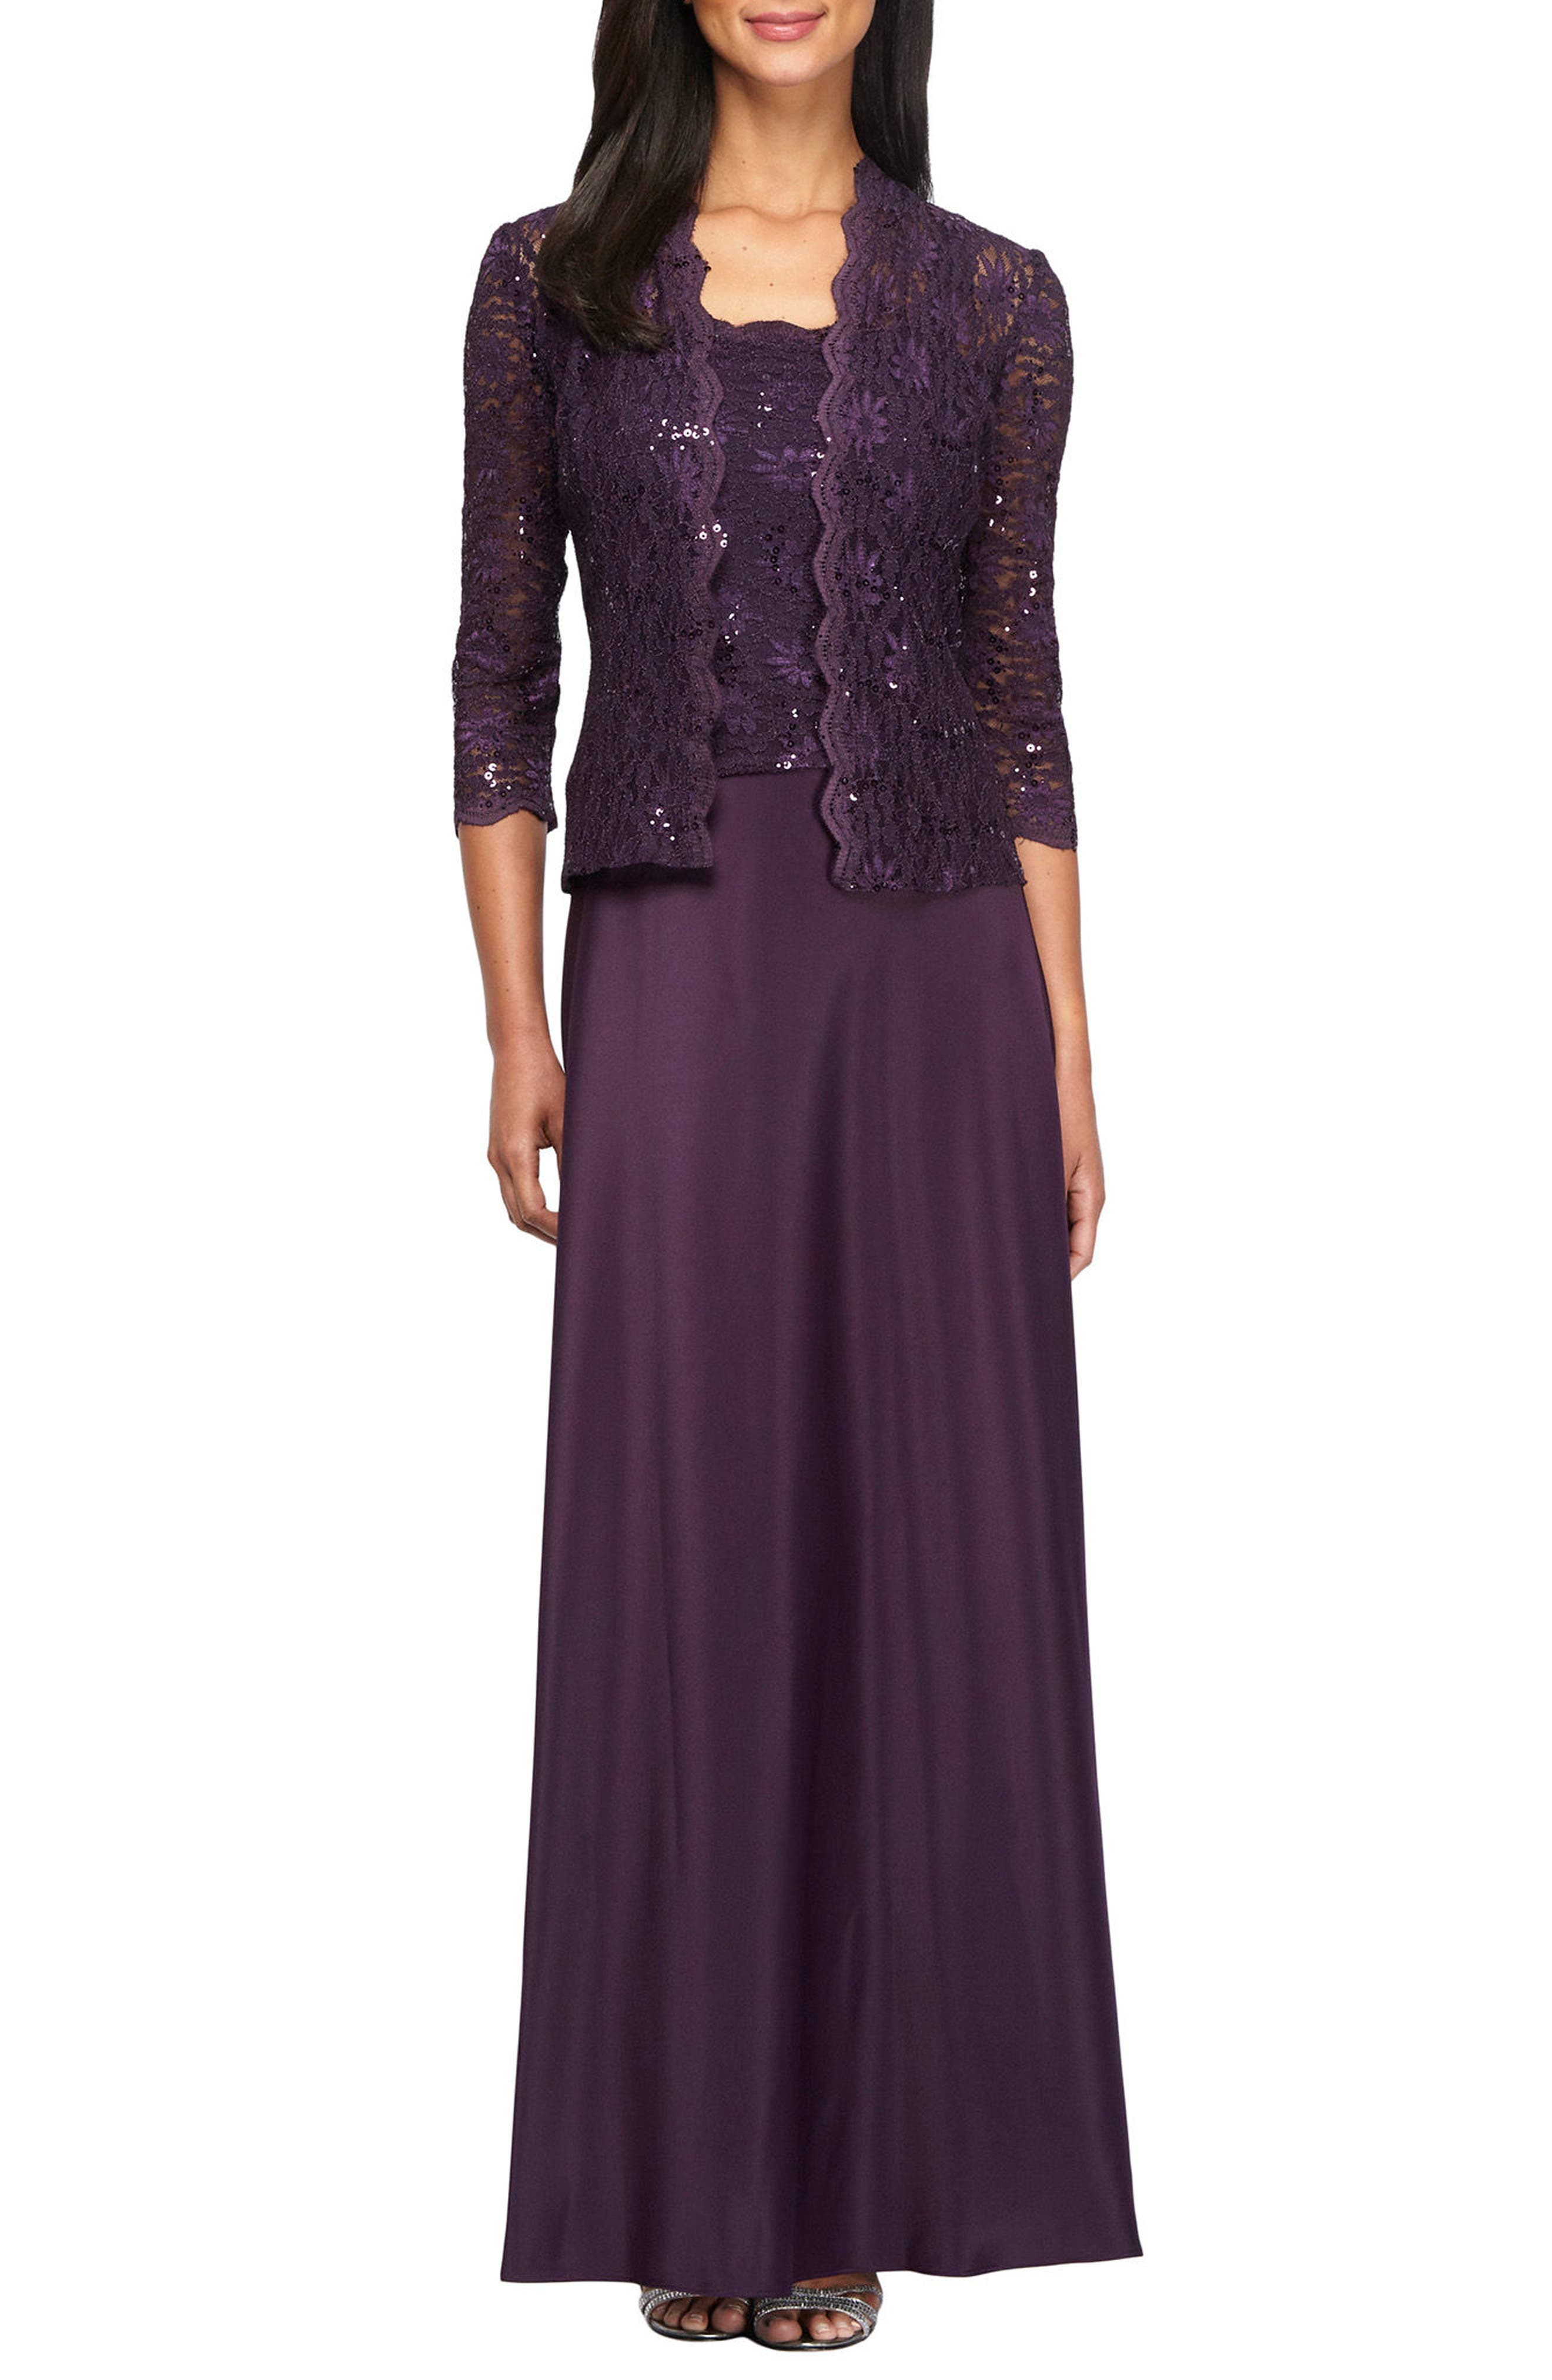 Main Image - Alex Evenings Sequin Lace & Satin Gown with Jacket (Regular & Petite)